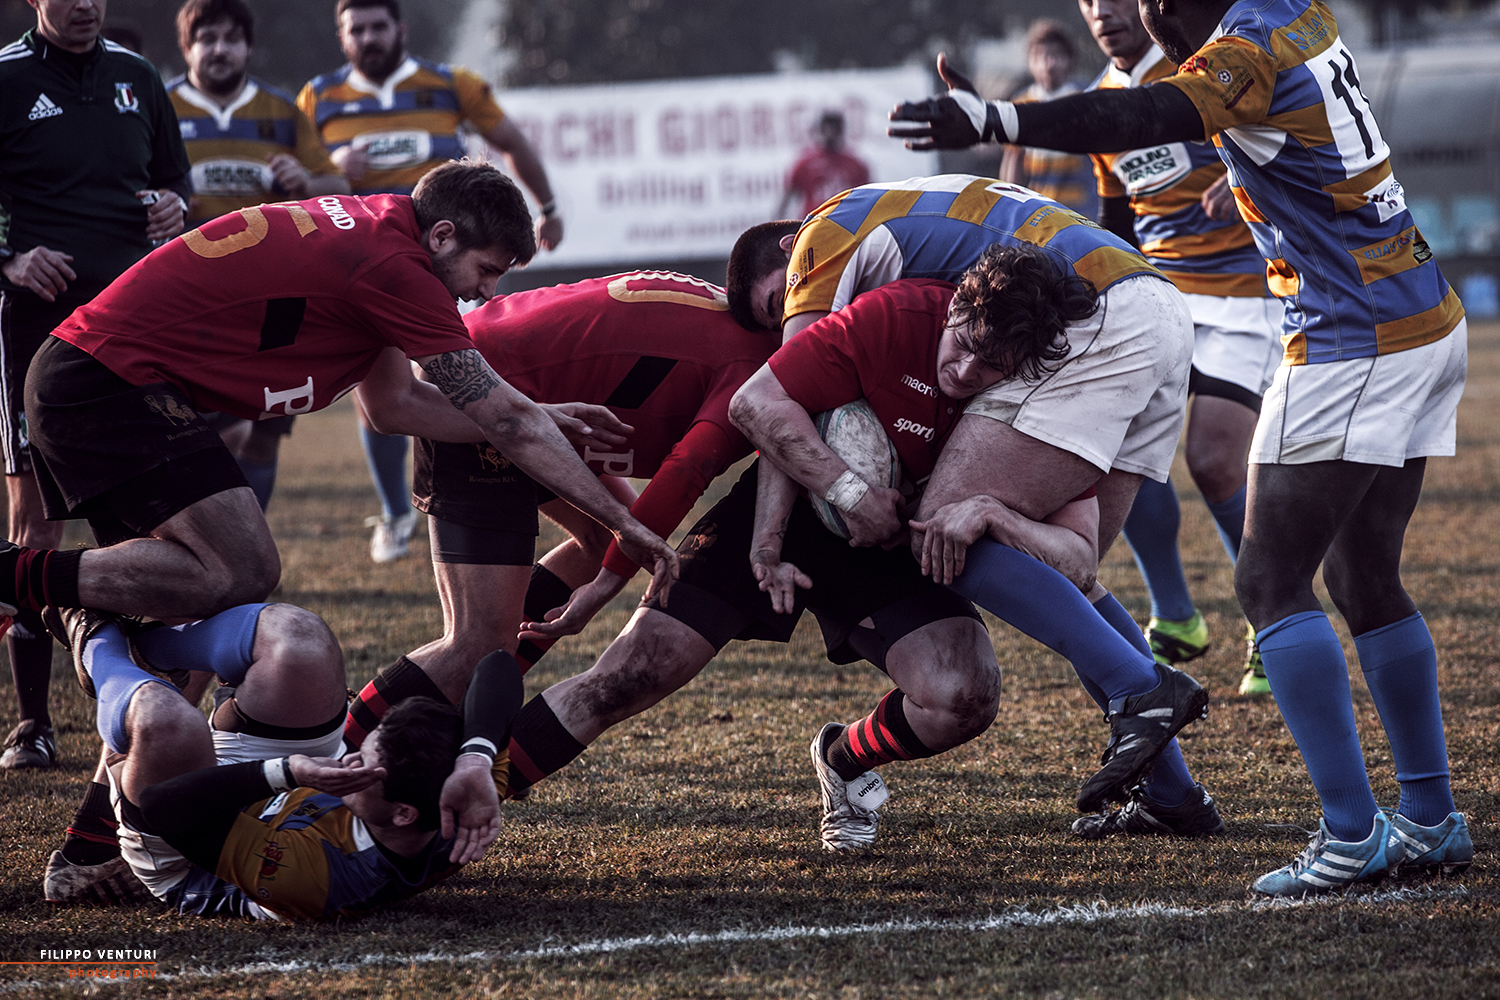 romagna_rugby_parma_17.jpg